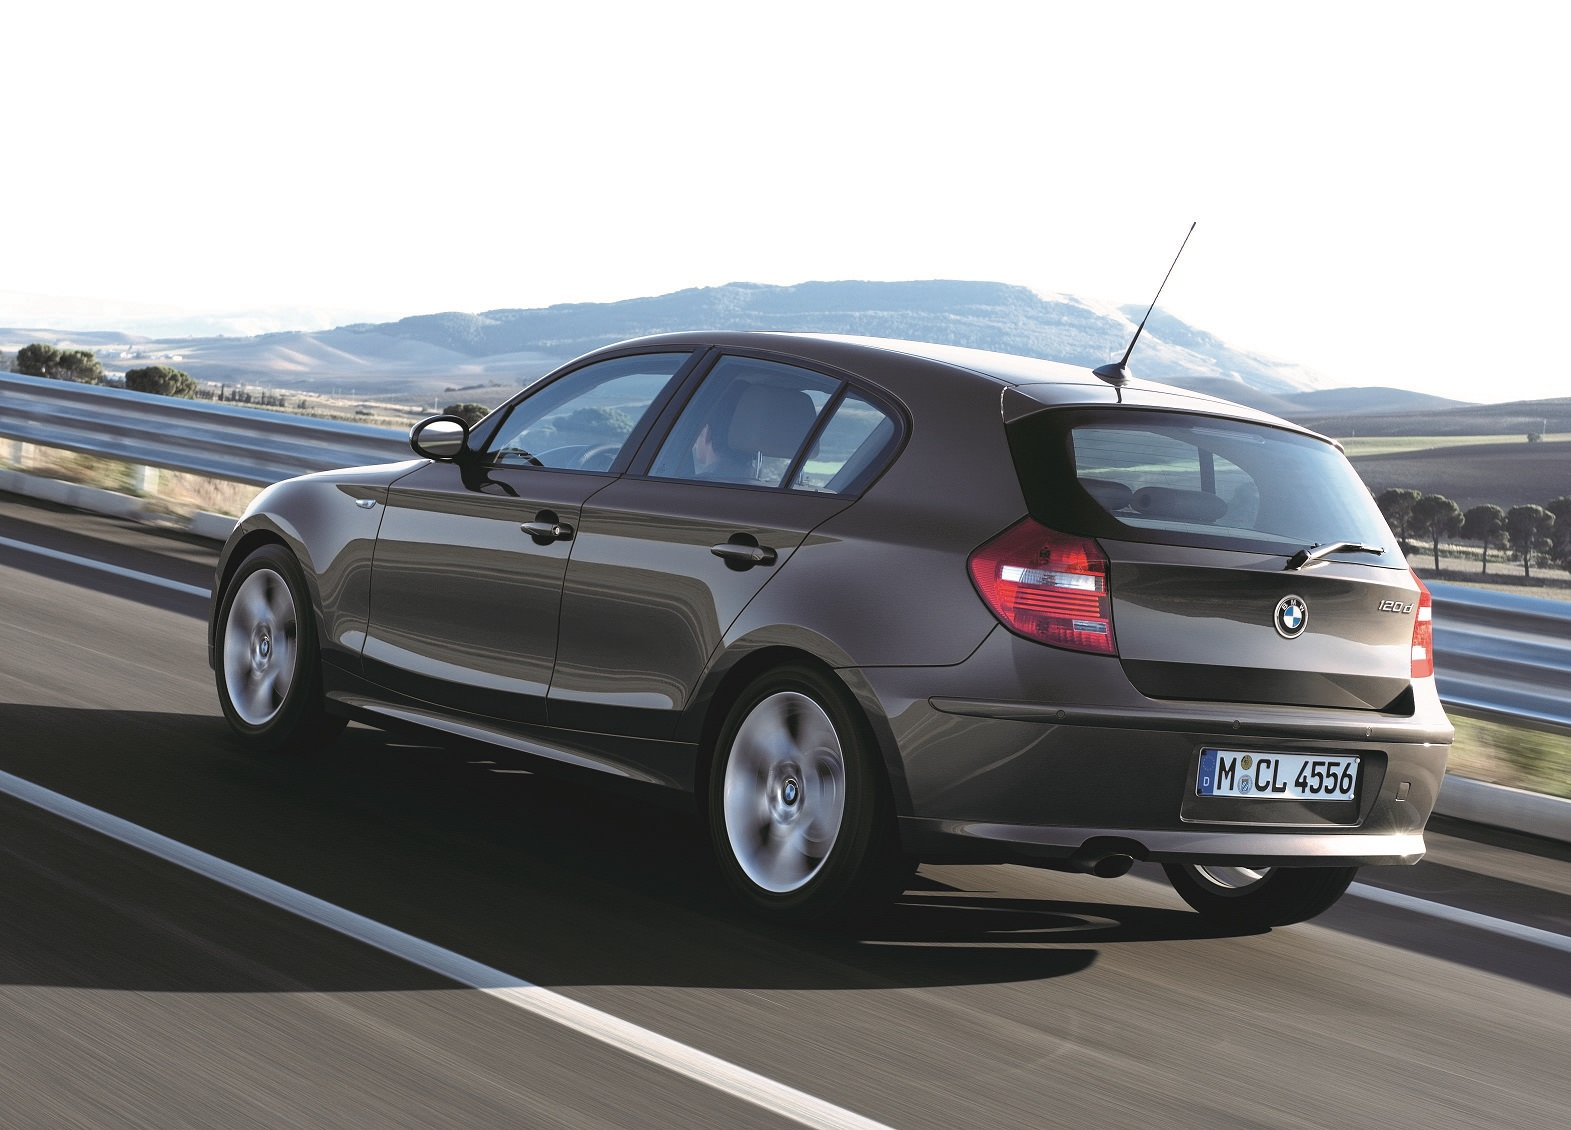 BMW 1 Series on the road